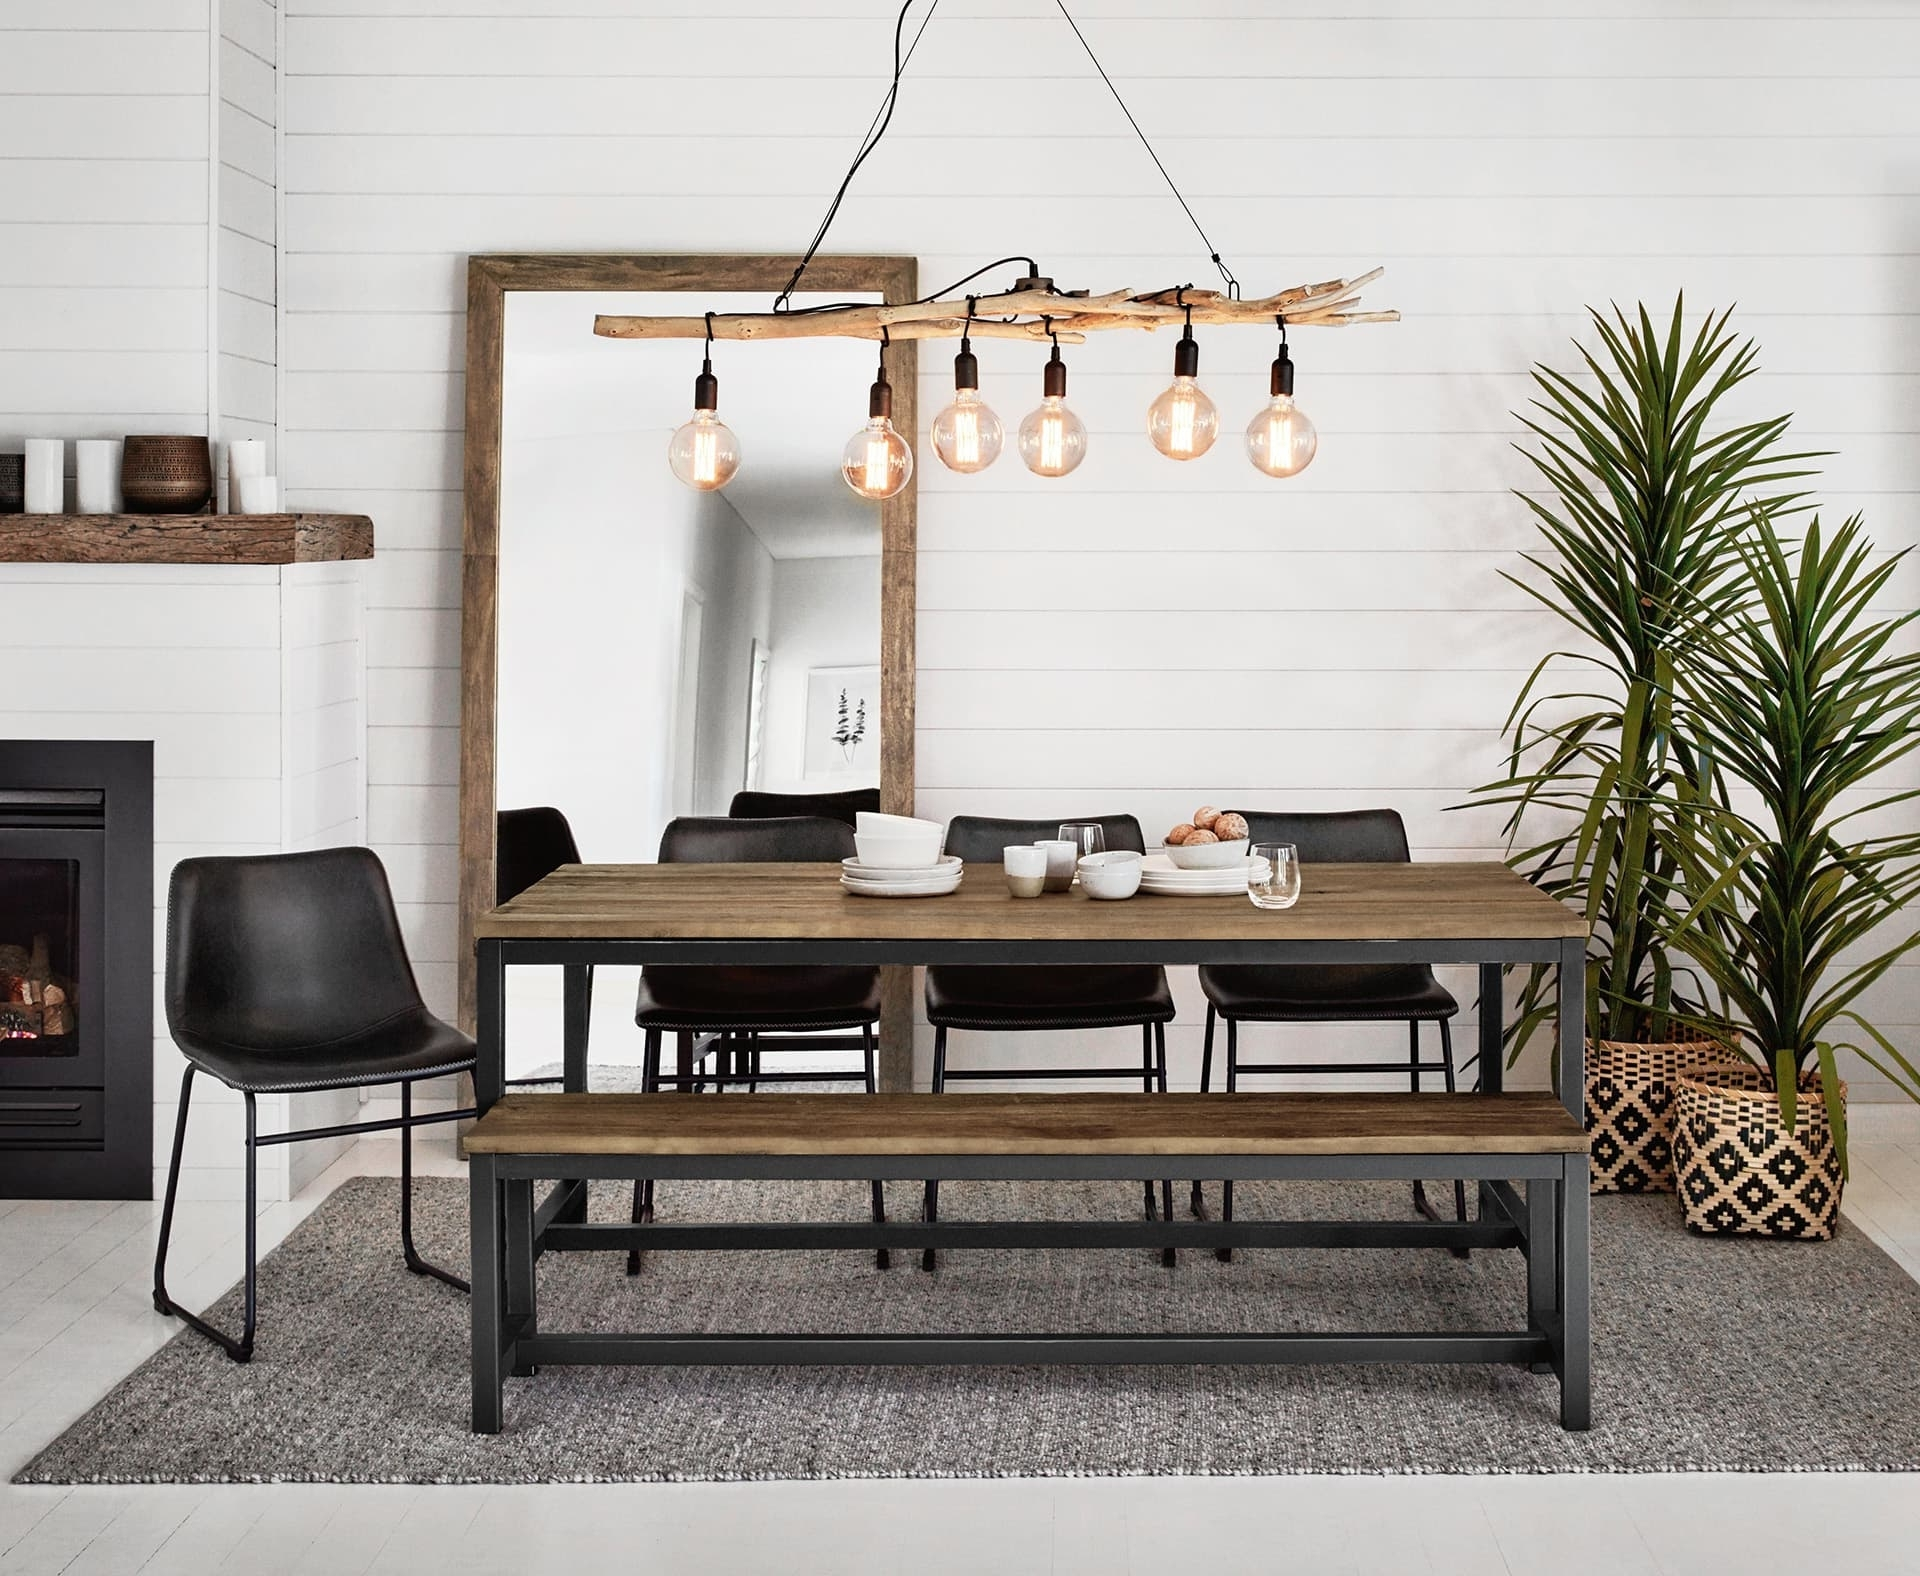 Rugs Under Dining Tables: Everything You Need To Know For Popular Dining Tables (View 20 of 25)